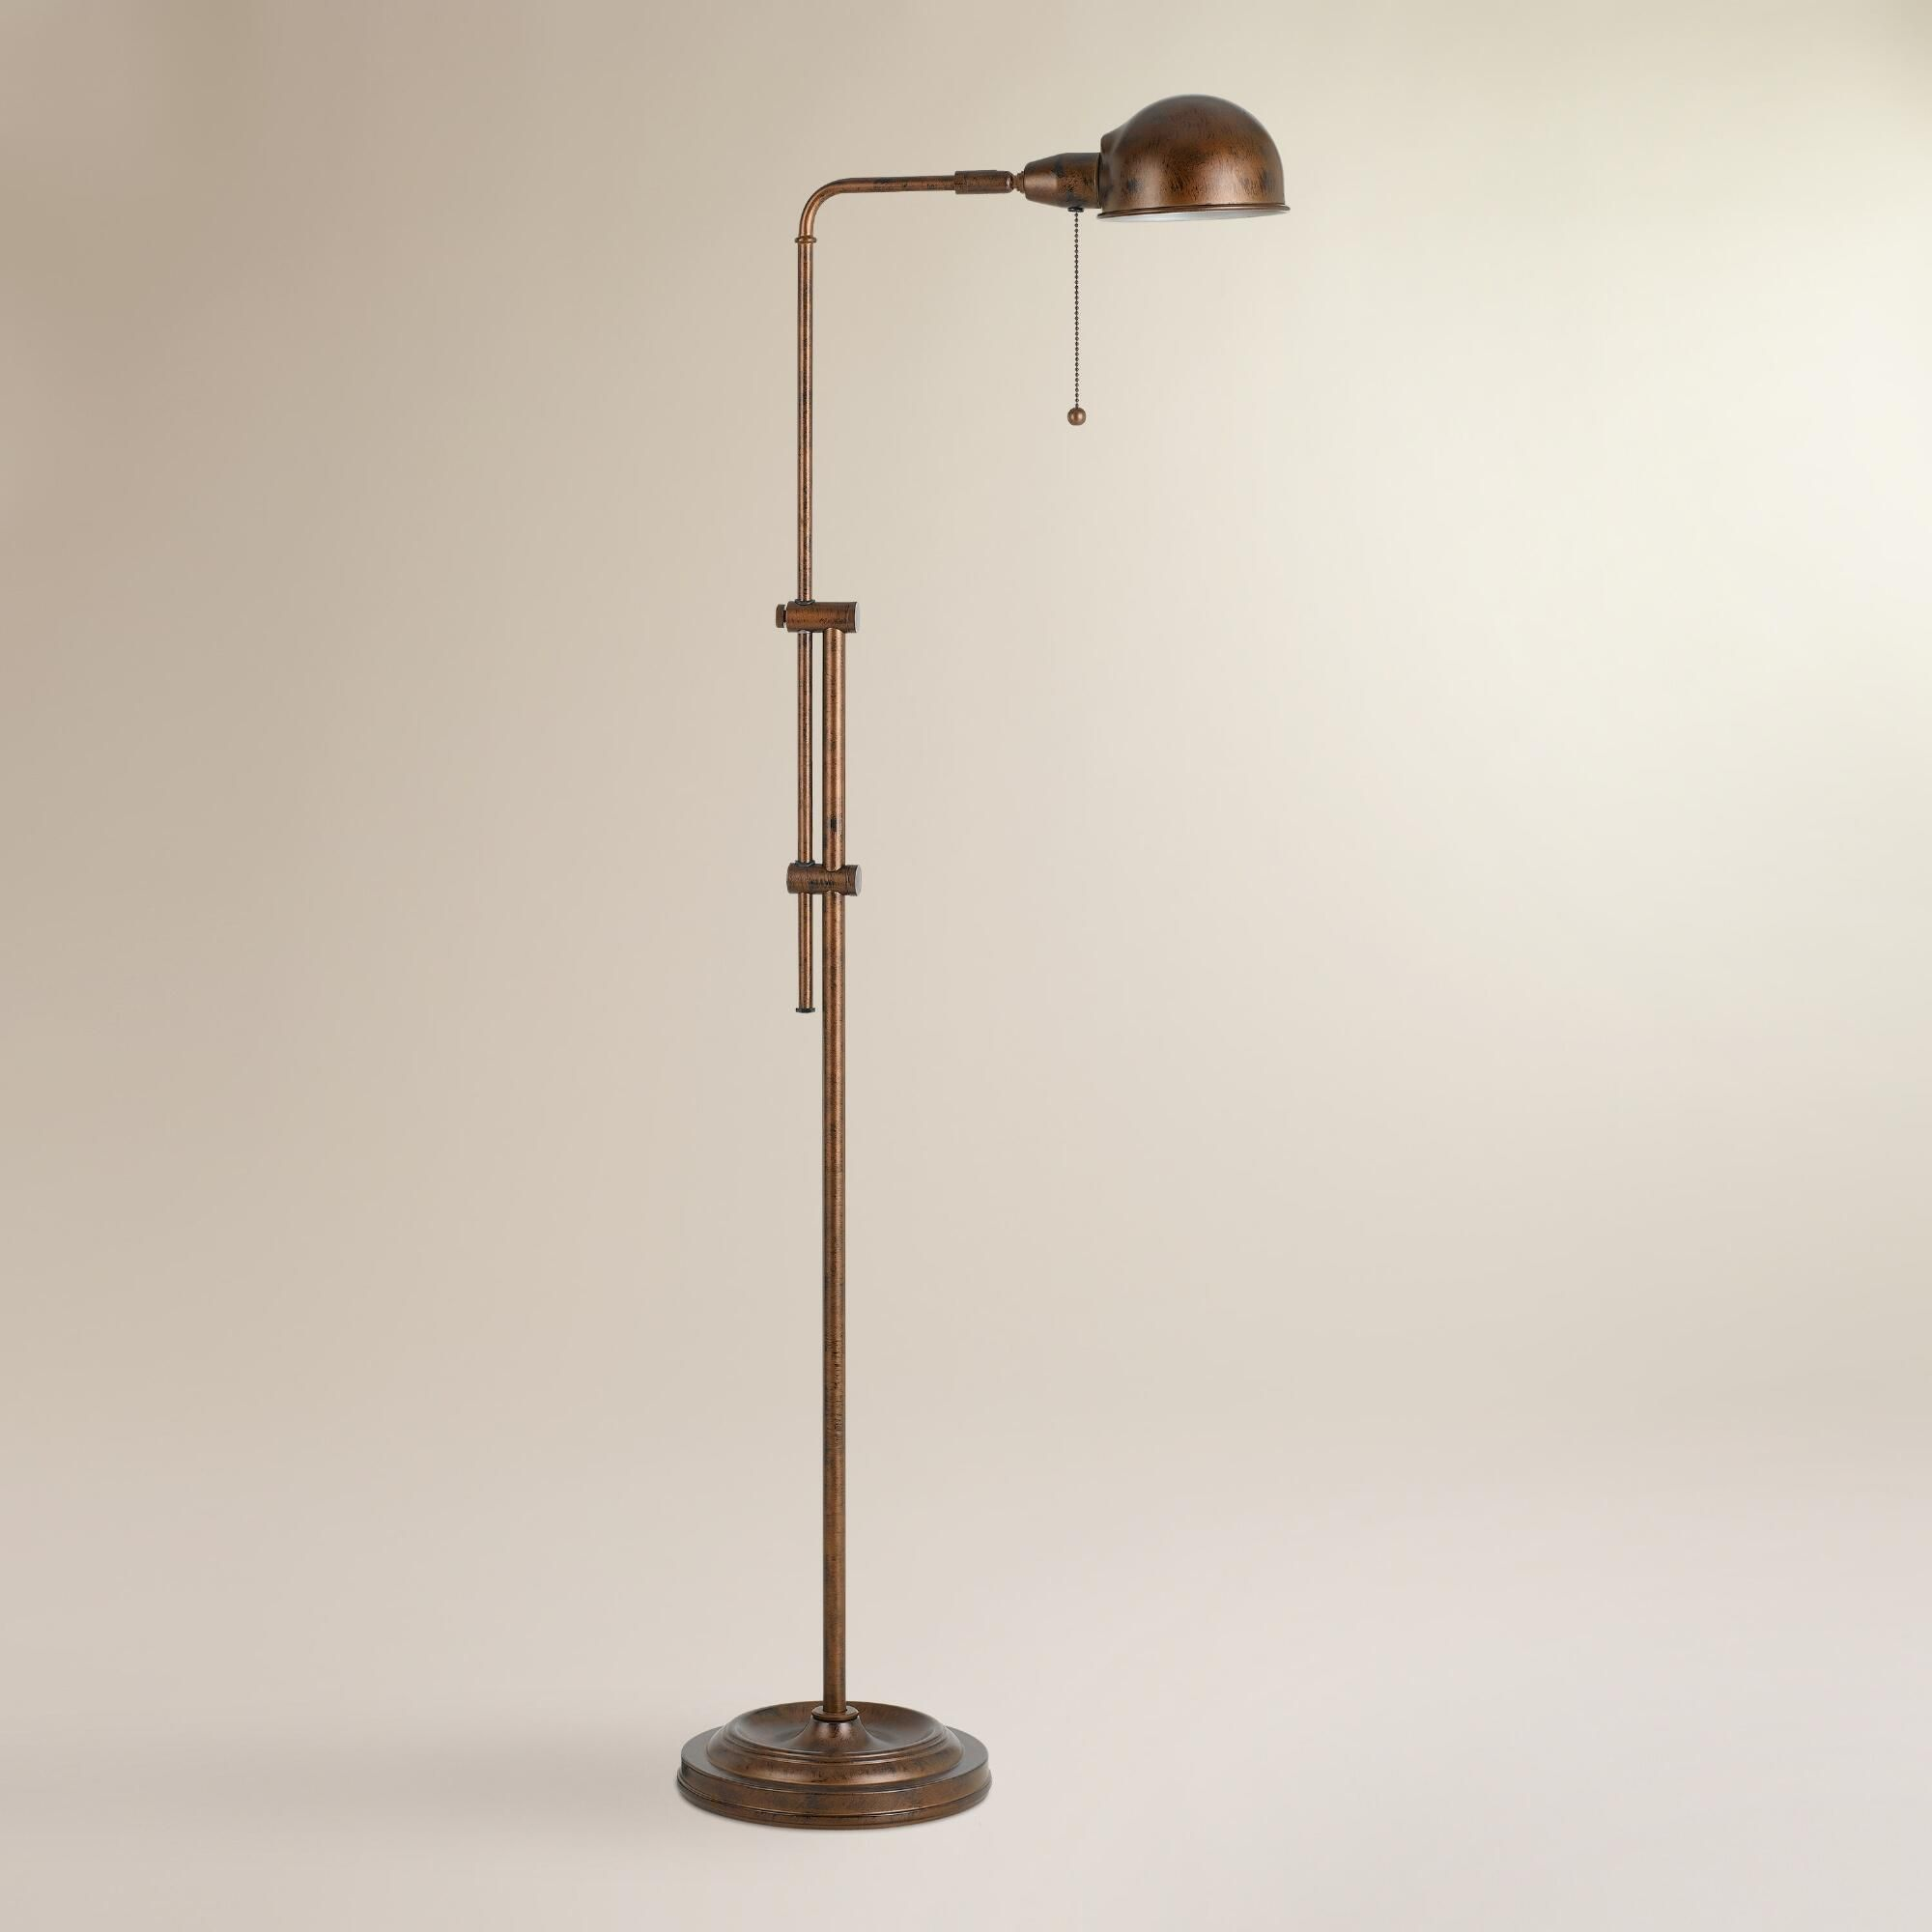 With its adjustable pole our rust crosby pharmacy floor lamp is an with its adjustable pole our rust crosby pharmacy floor lamp is an attractive light source aloadofball Image collections